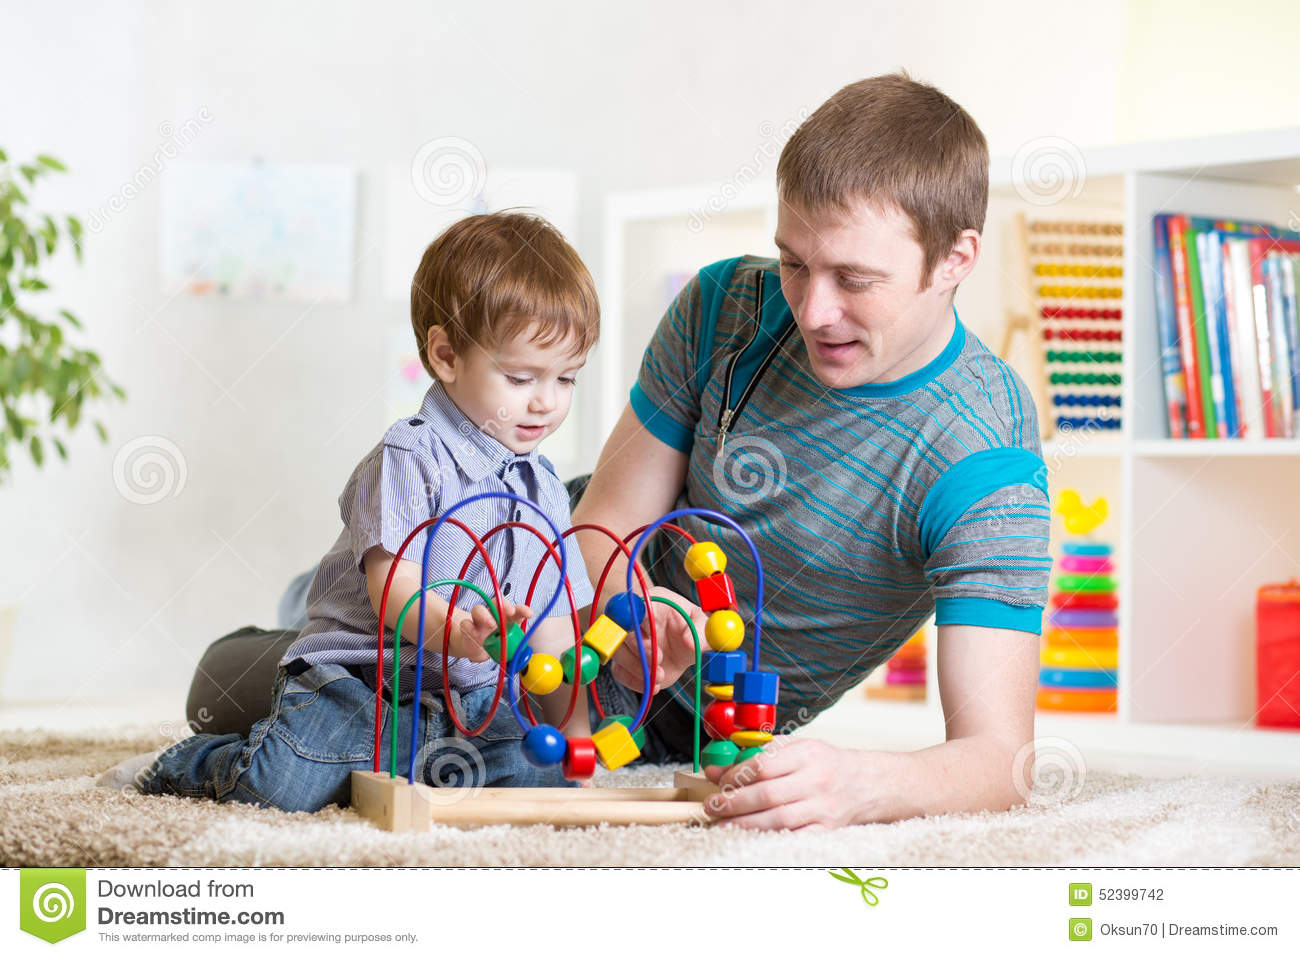 Boy Toys For Dads : Happy kid boy and dad playing toy stock photo image